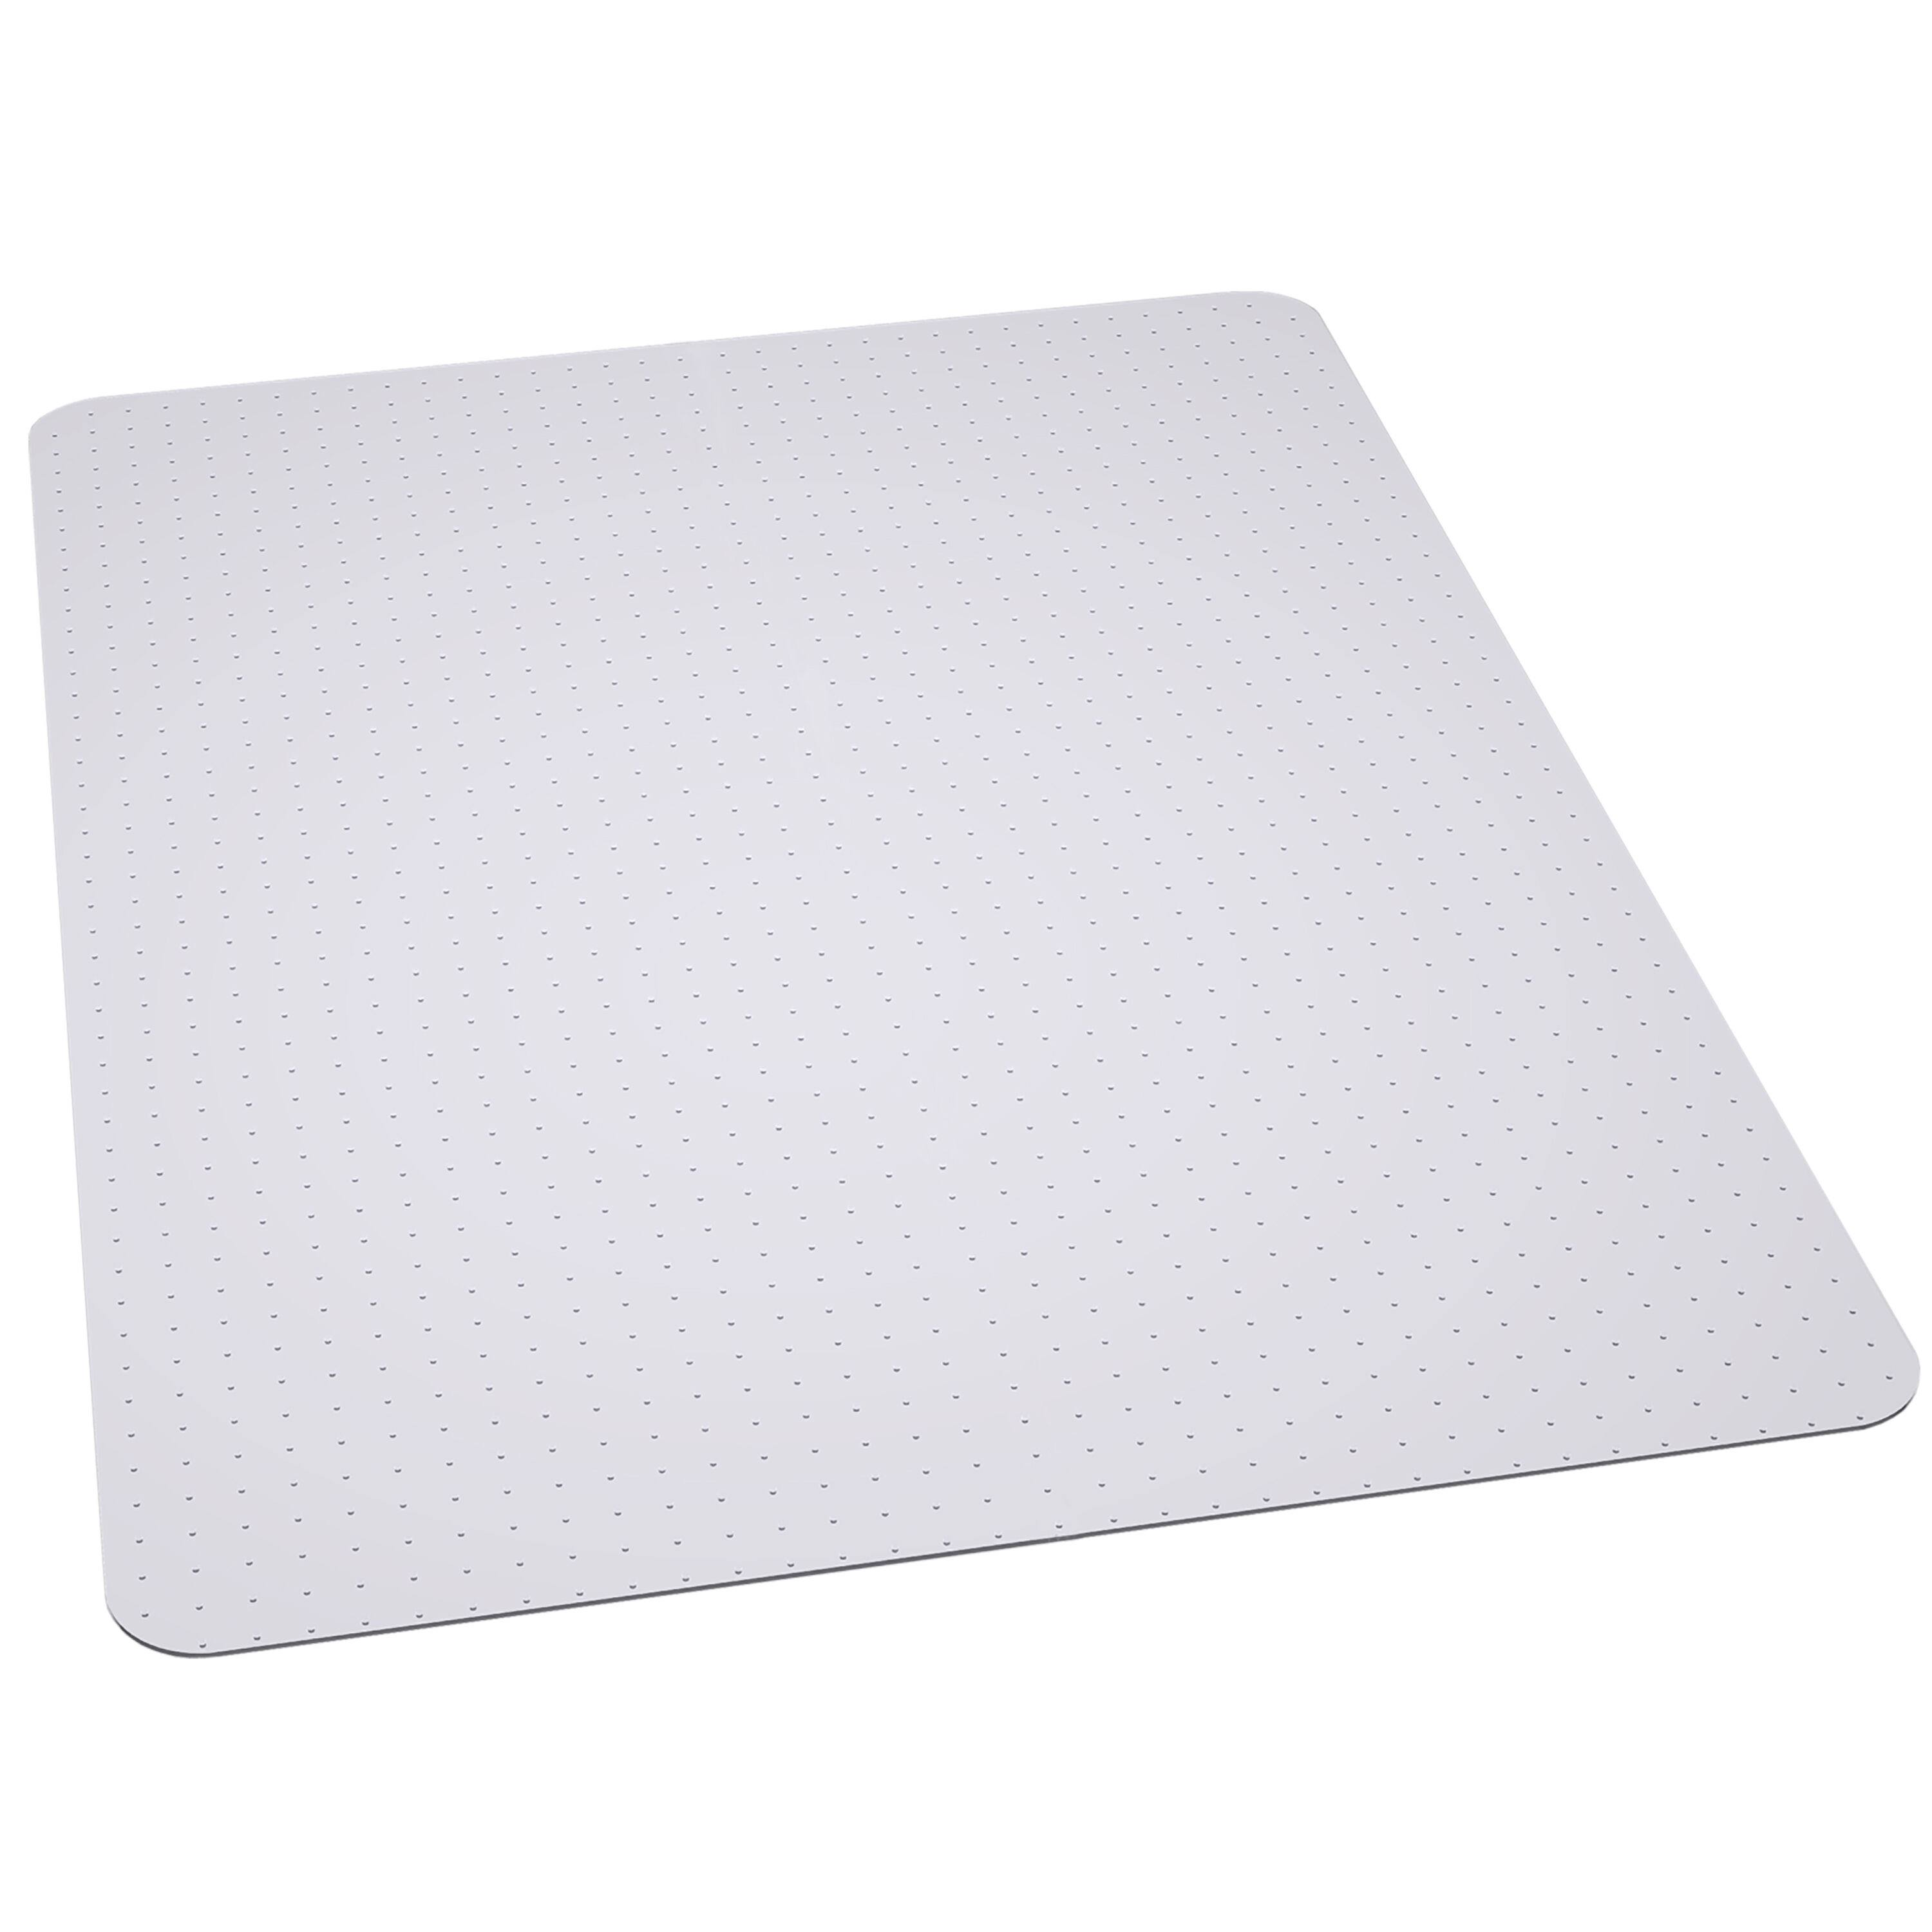 office chair mat 45 x 53 bed with arms uk 45x53 clear carpet 121712 gg